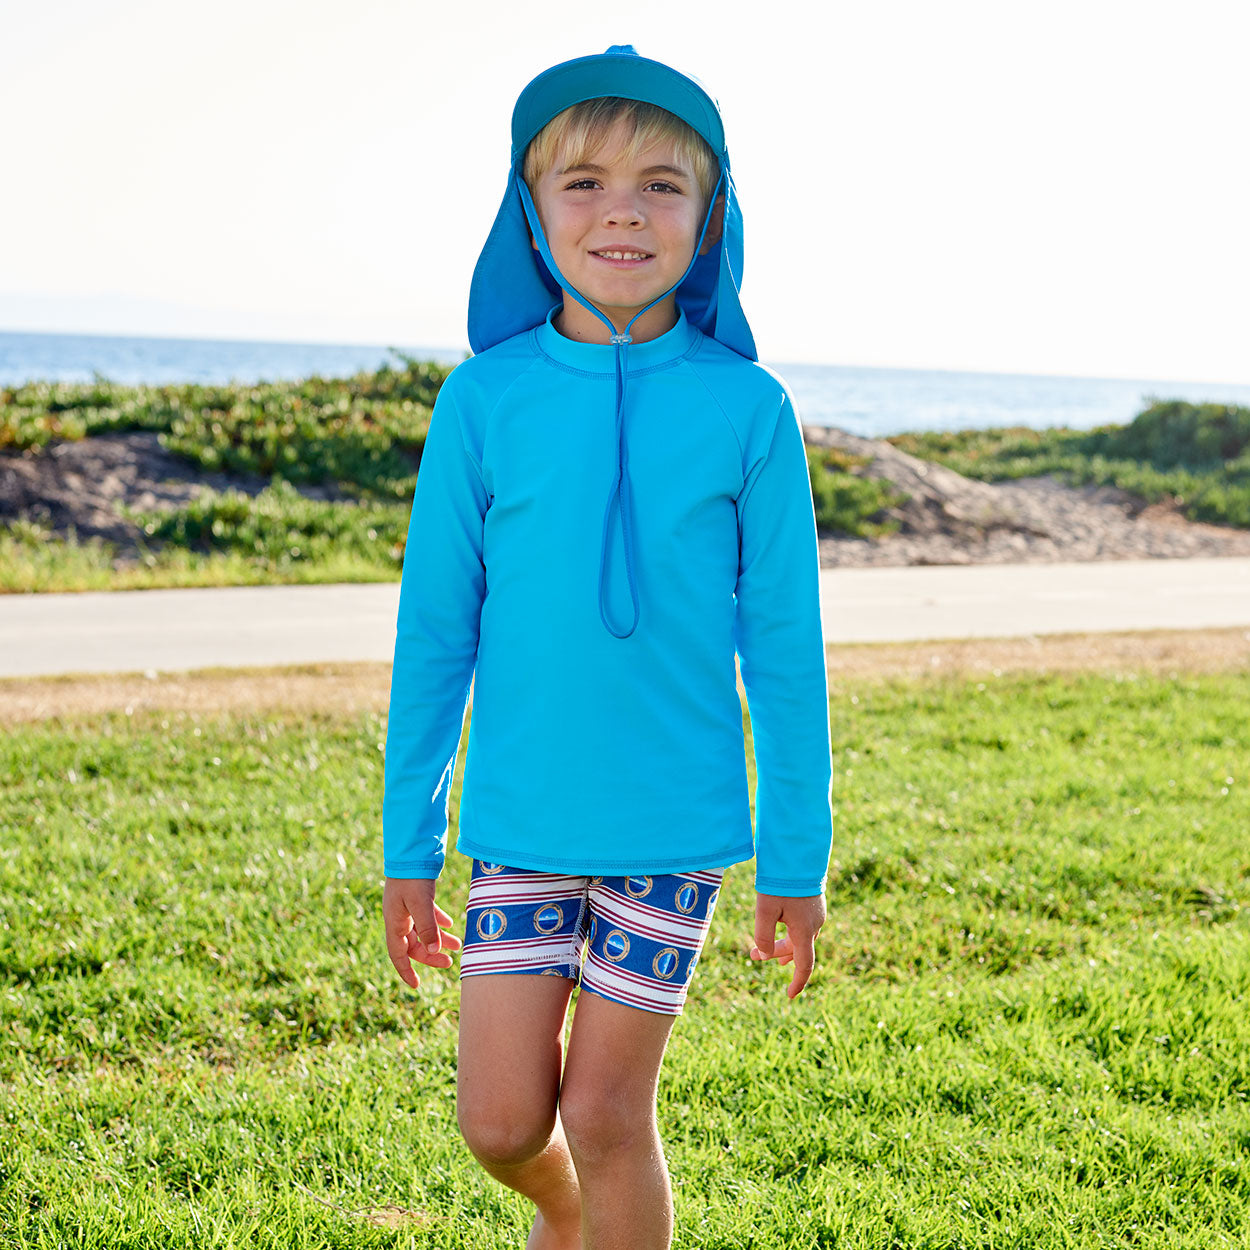 Island Blue Kids Long Sleeve Rash Guard Top Upf50 Boys Girls Unisex Size 2 12 Boy Walking on a Grassy Patch by the Beach Sunpoplife